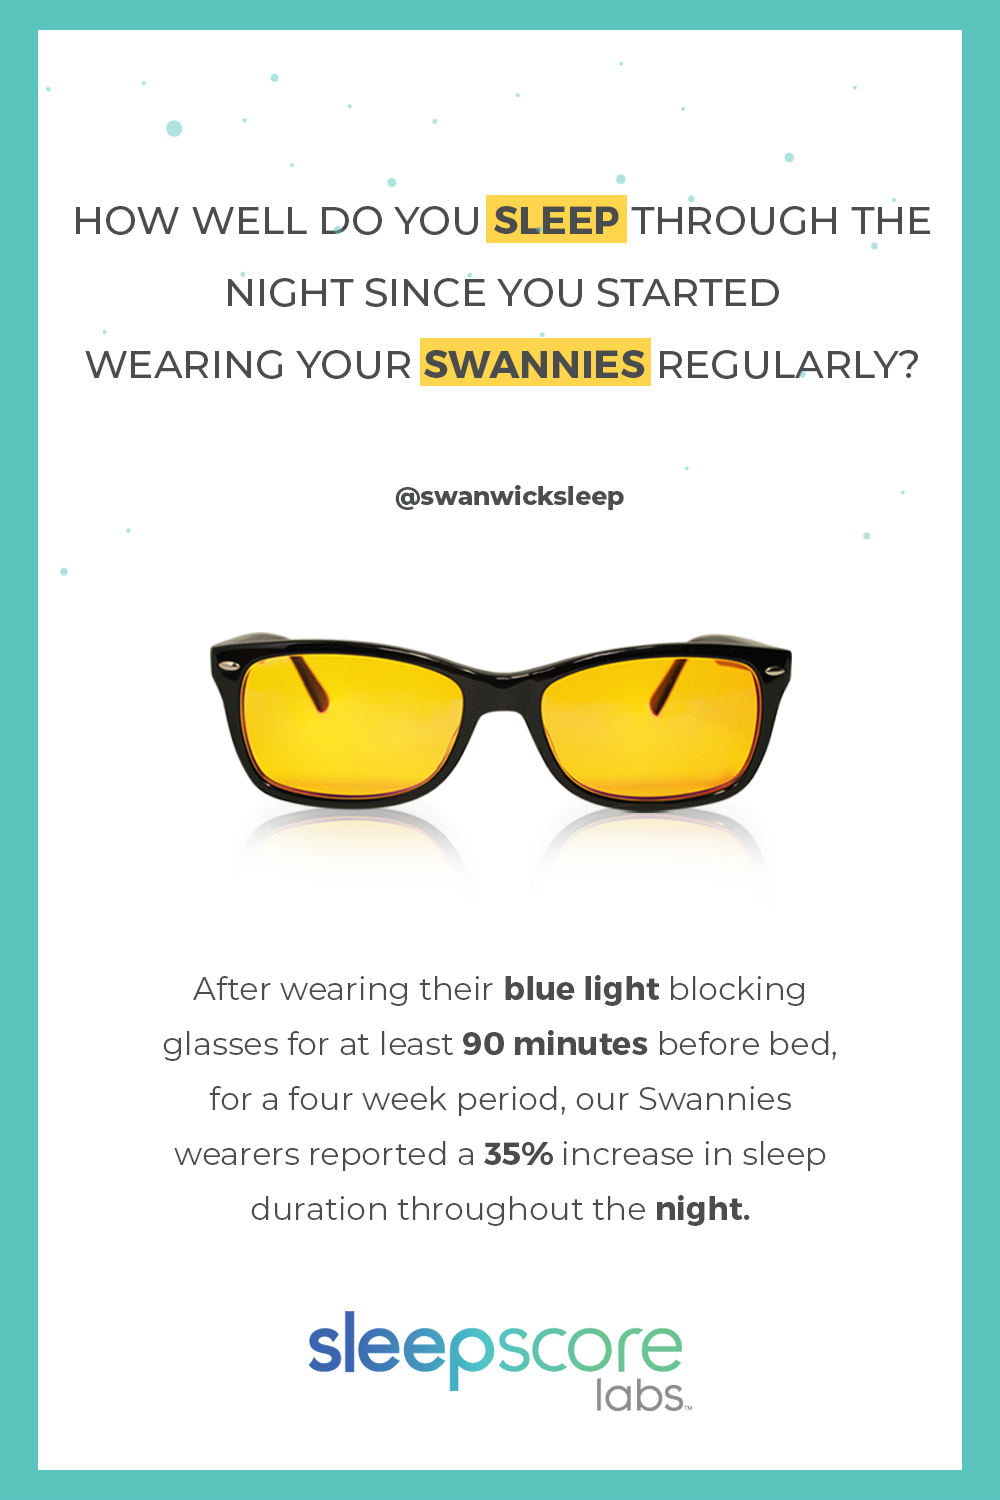 12fccdad46 Swannies Blue Light Blocking Glasses can help you sleep better through the  night. That s what our recent SleepScore product validation study results  show.